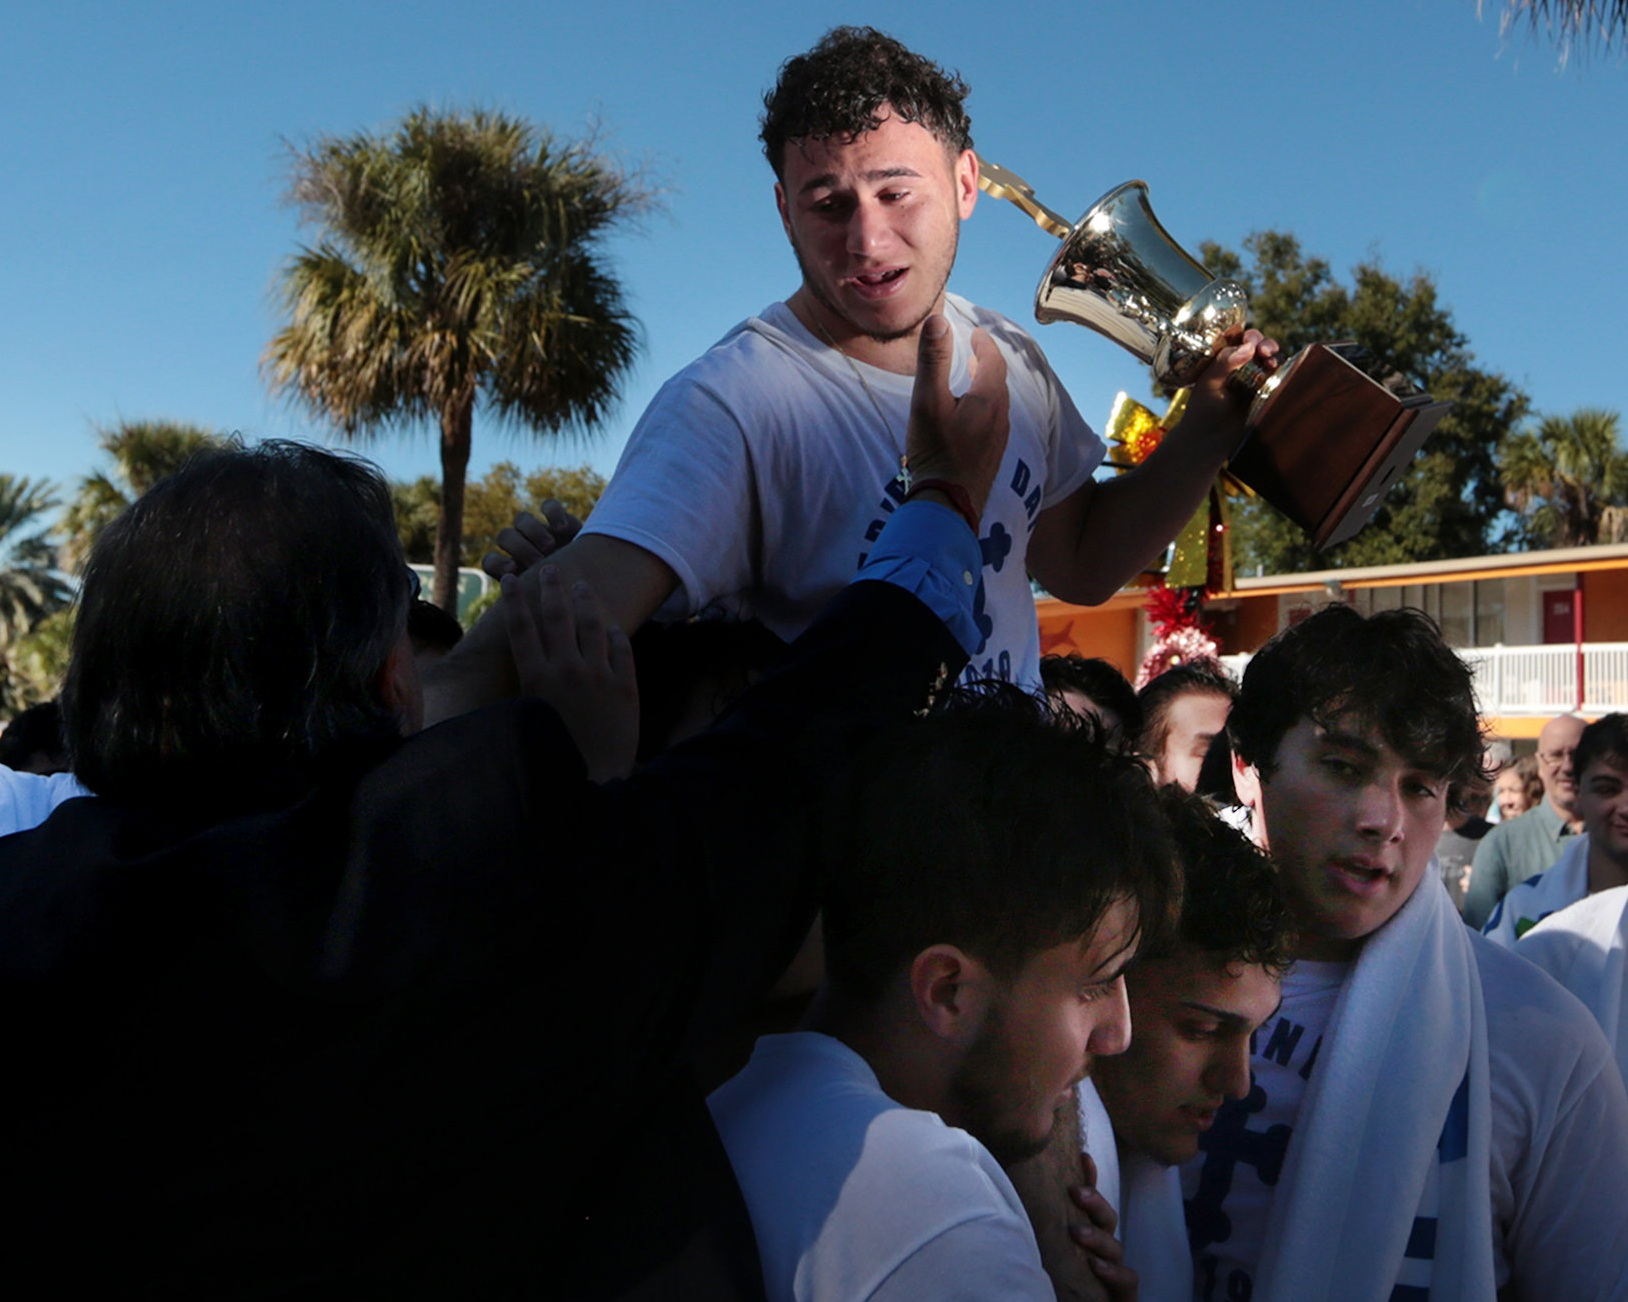 Cross retriever Ilias Skandaliaris, 17, of Tarpon Springs, reaches into the crowd as he is carried by fellow cross divers to the Saint Nicholas Greek Orthodox Church during Epiphany at Spring Bayou in Tarpon Springs, Florida on Sunday, January 6, 2019. The celebration in Tarpon Springs is often called the largest Epiphany celebration in the Western Hemisphere.